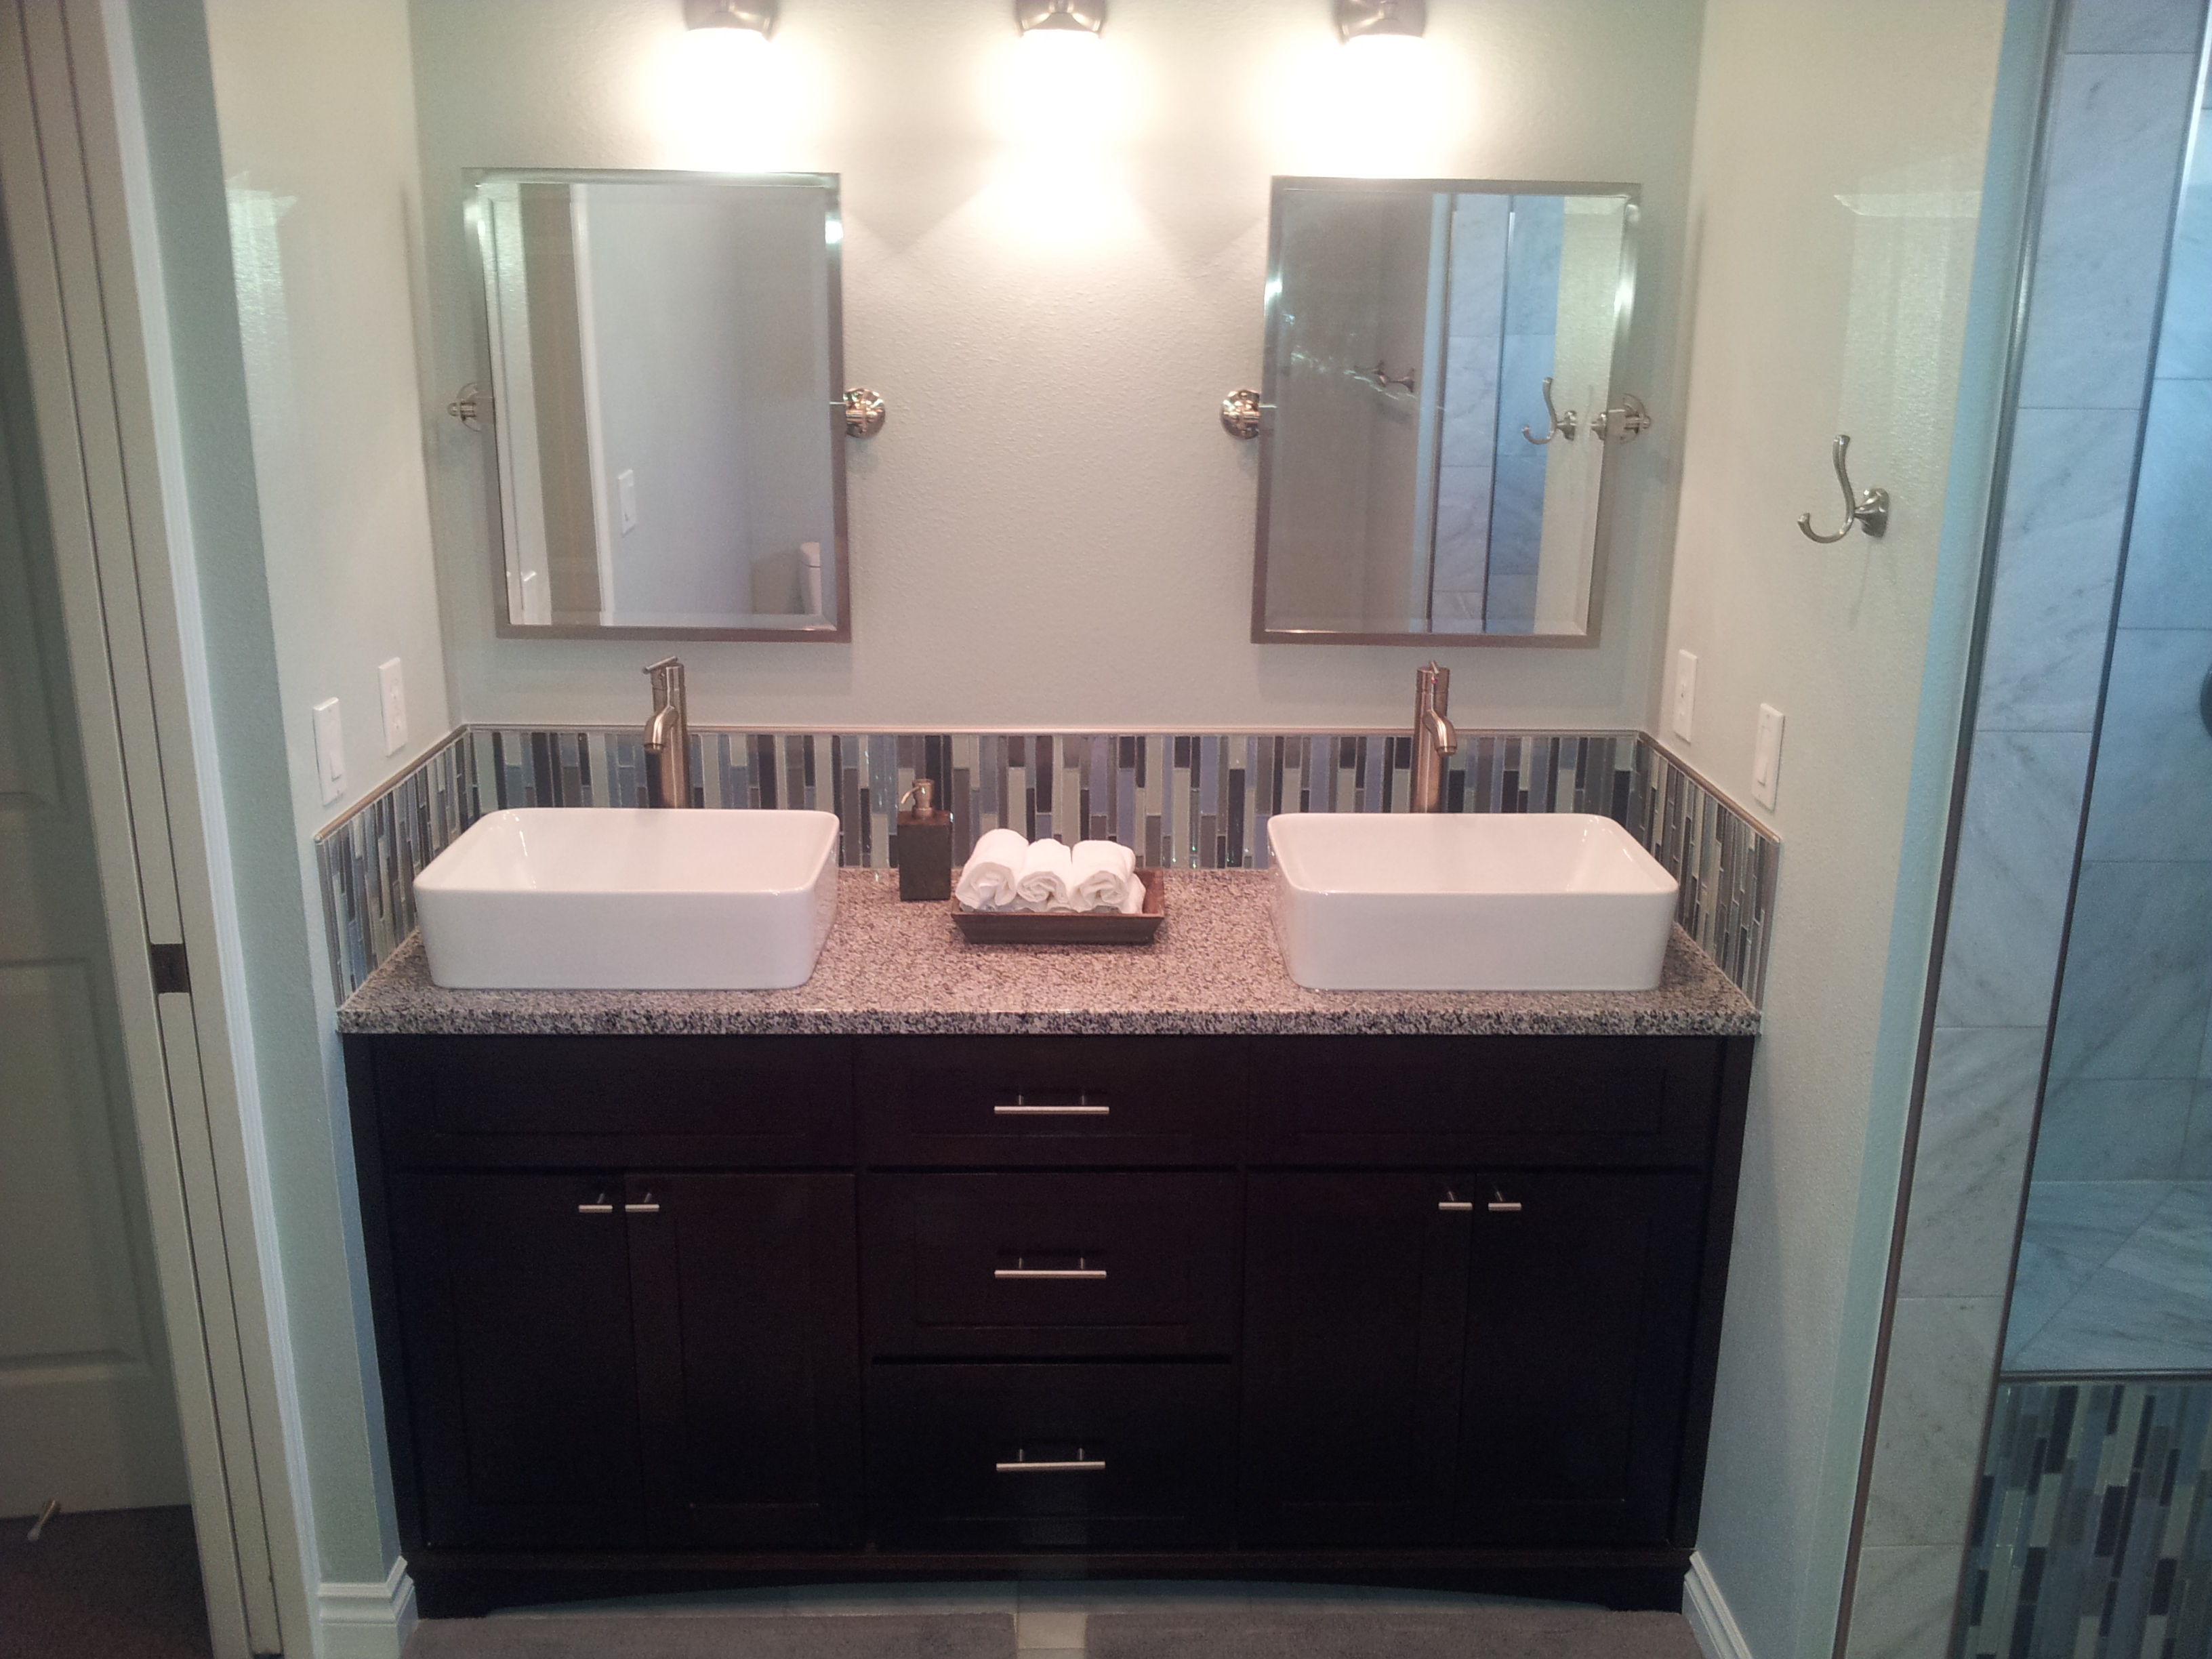 Fabulous Bathroom Remodel Portland Sfw Construction Llc Home Interior And Landscaping Ologienasavecom